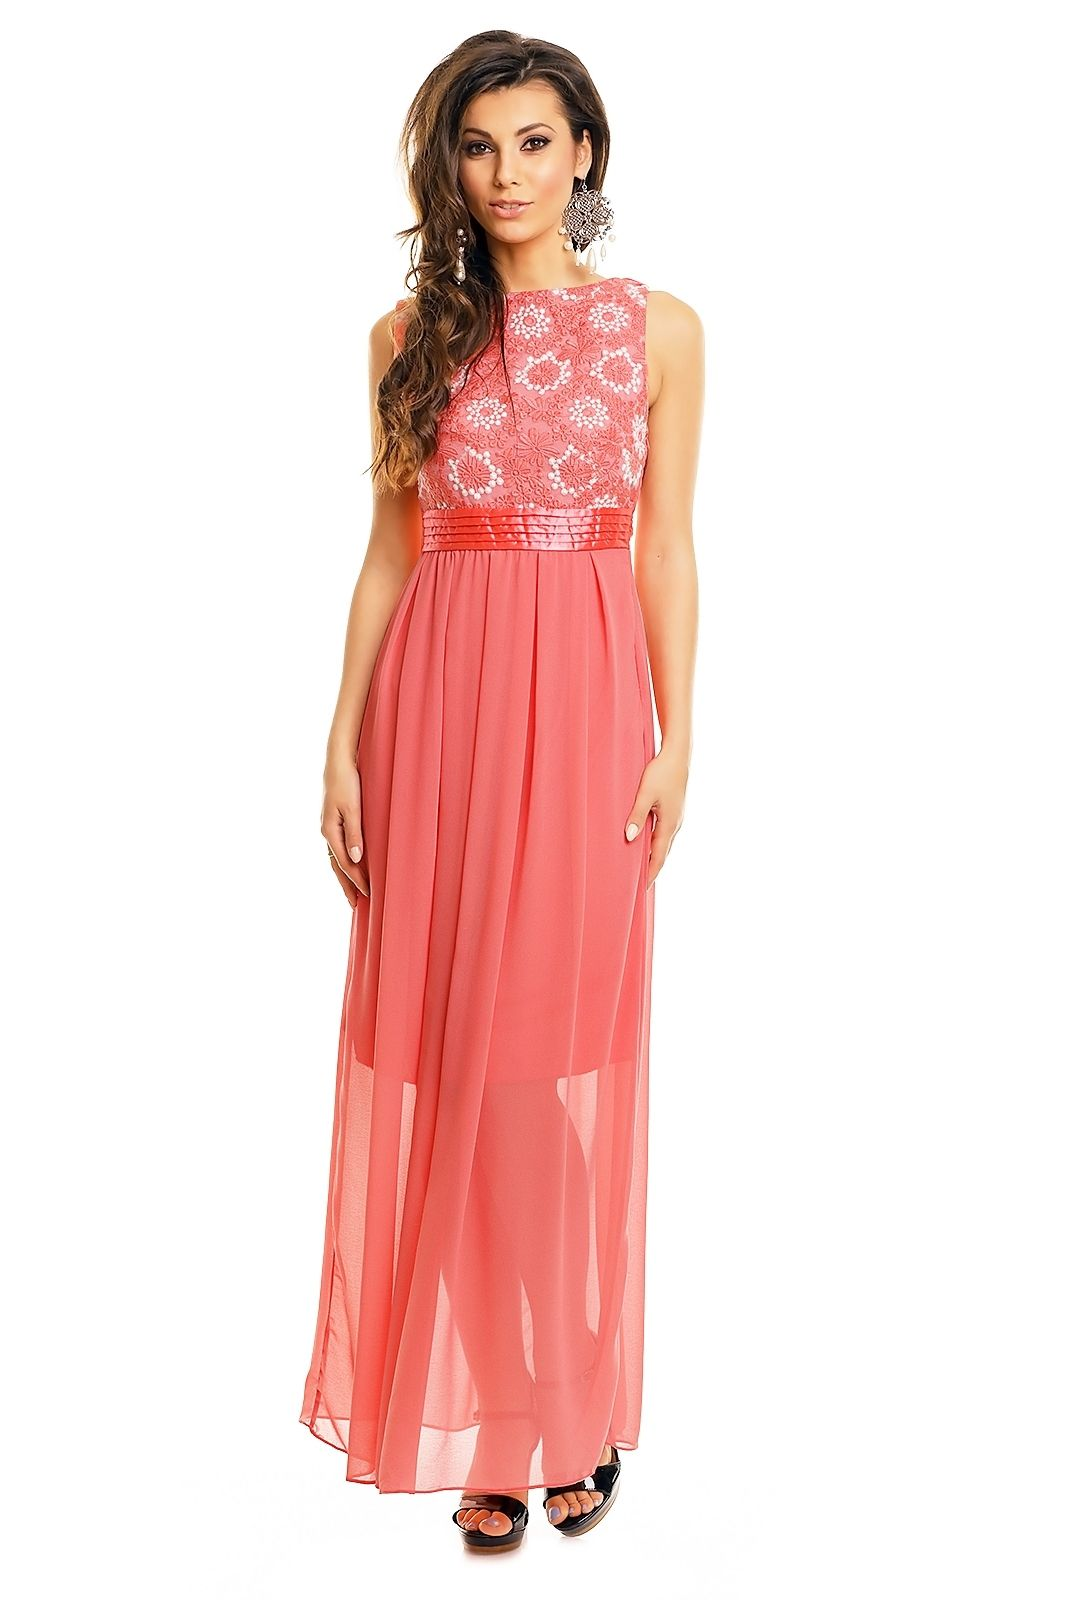 Robe soiree rose saumon